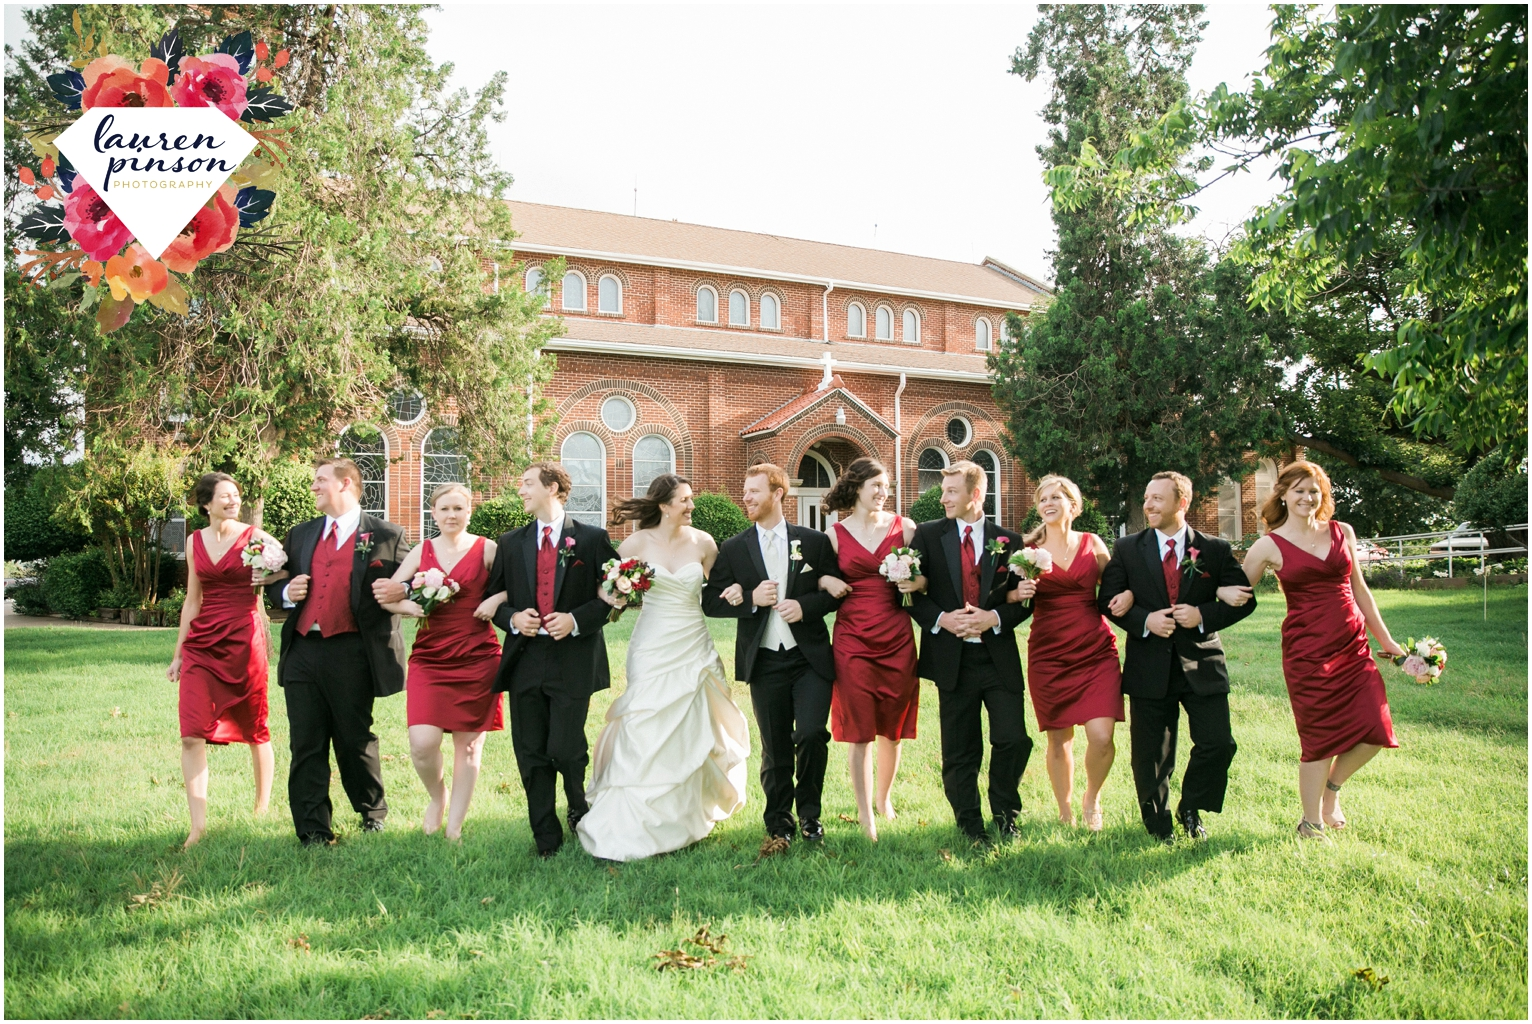 wichita-falls-wedding-photographer-OUR-Lady-queen-of-peace-catholic-wedding-the-forum-photography_0940.jpg